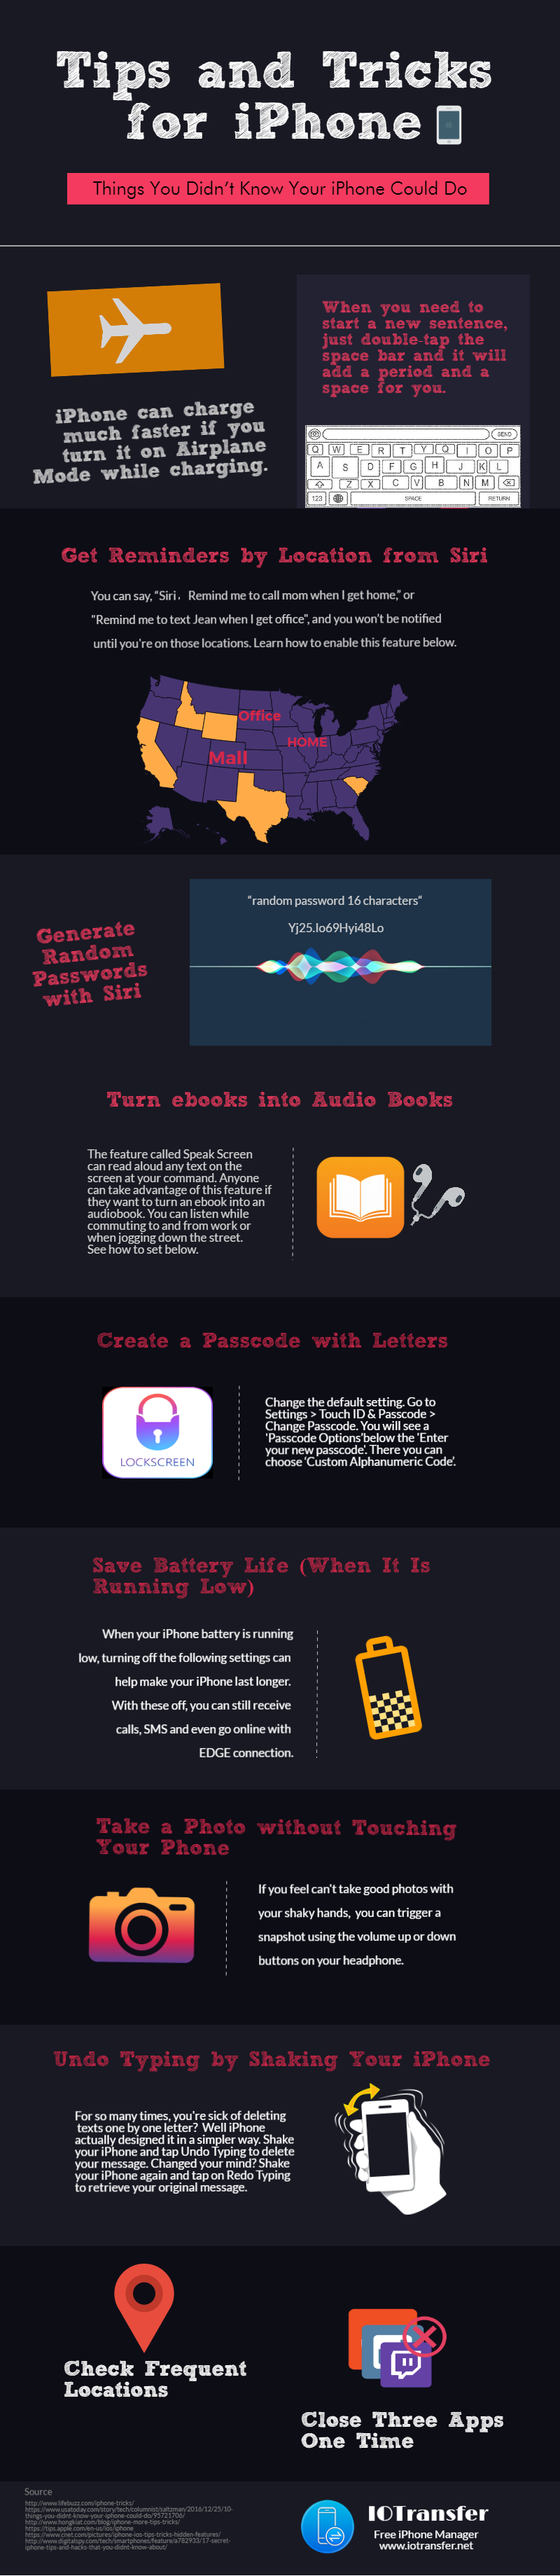 iPhone tips and tricks infographic